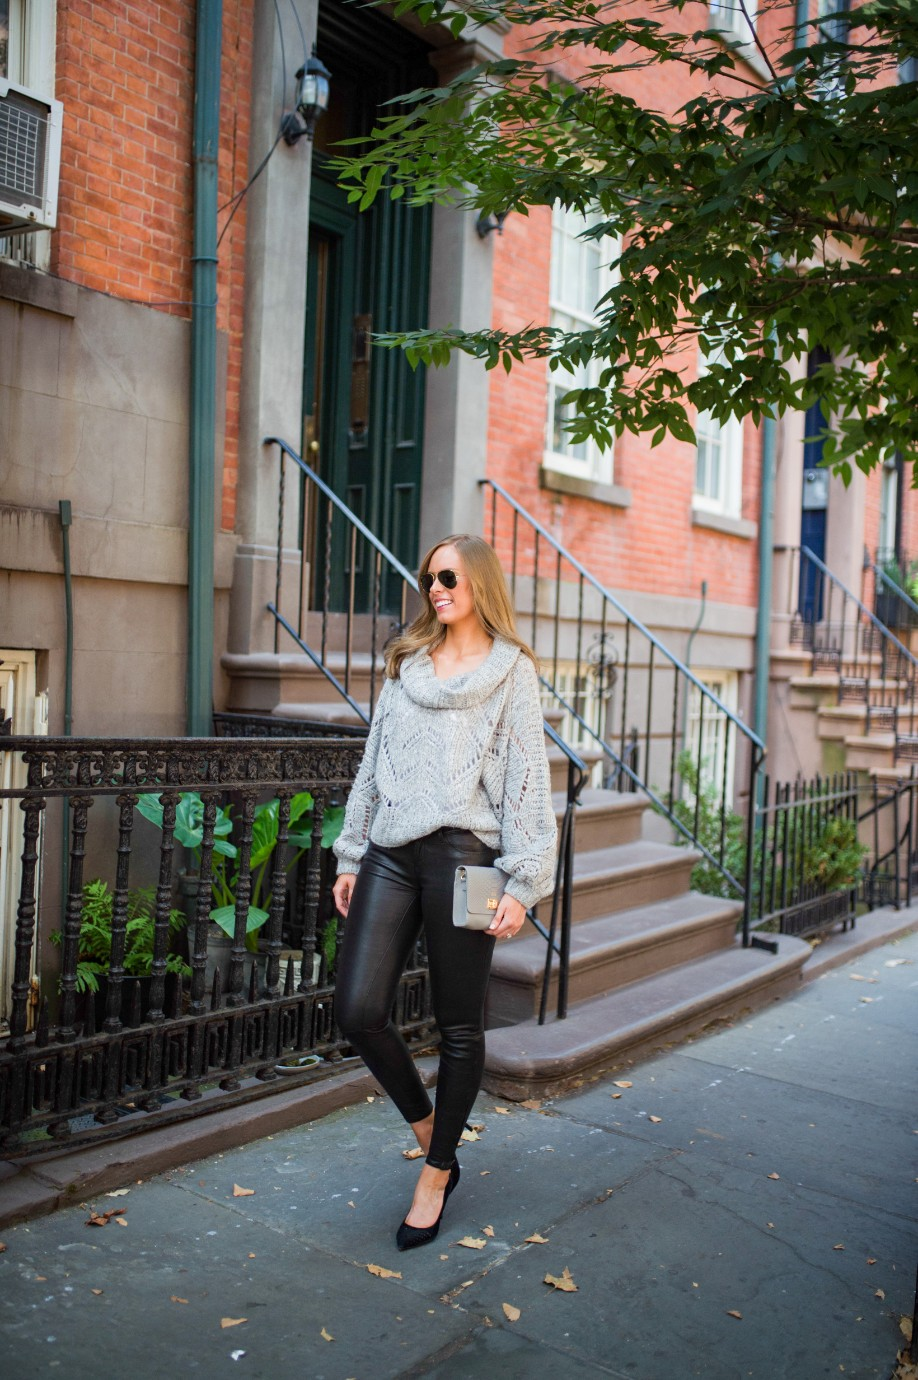 leather pants outfit and grey knit sweater fashion blogger outfit ideas fall winter style lauren slade style elixir 12